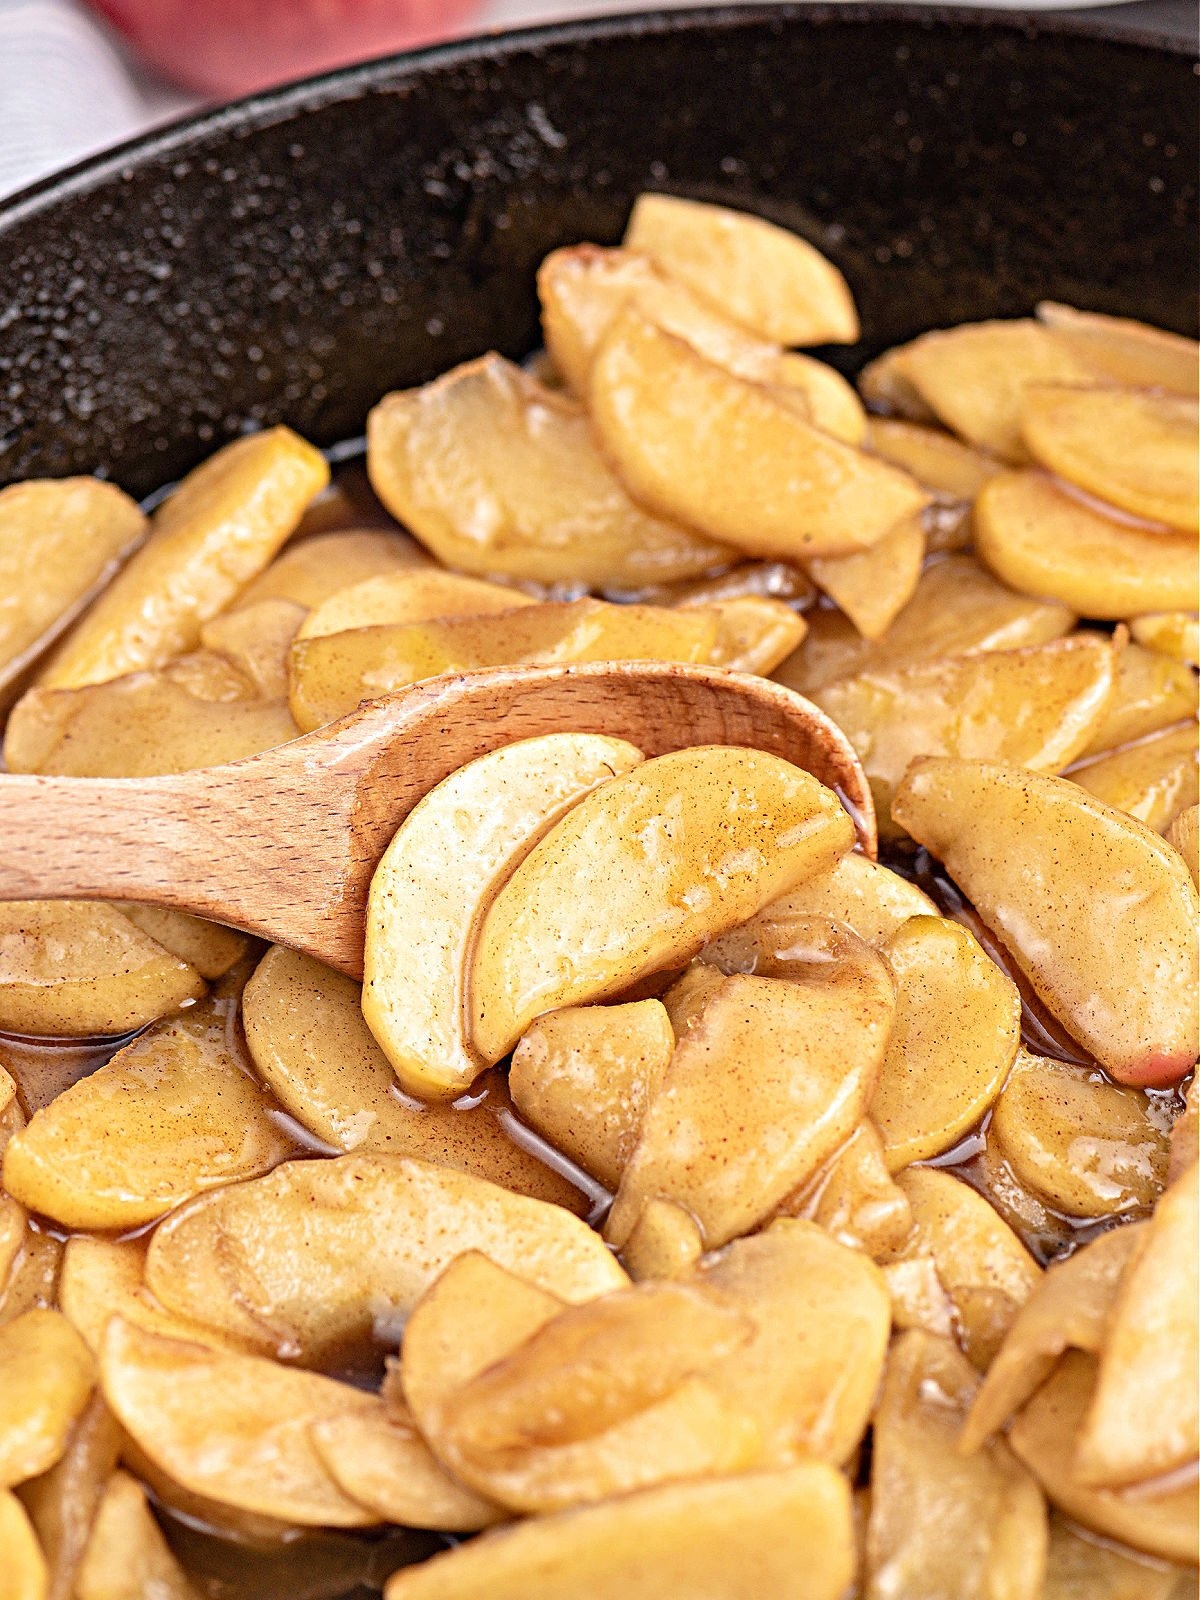 Wooden spoon stirring fried apples in a cast iron skillet.